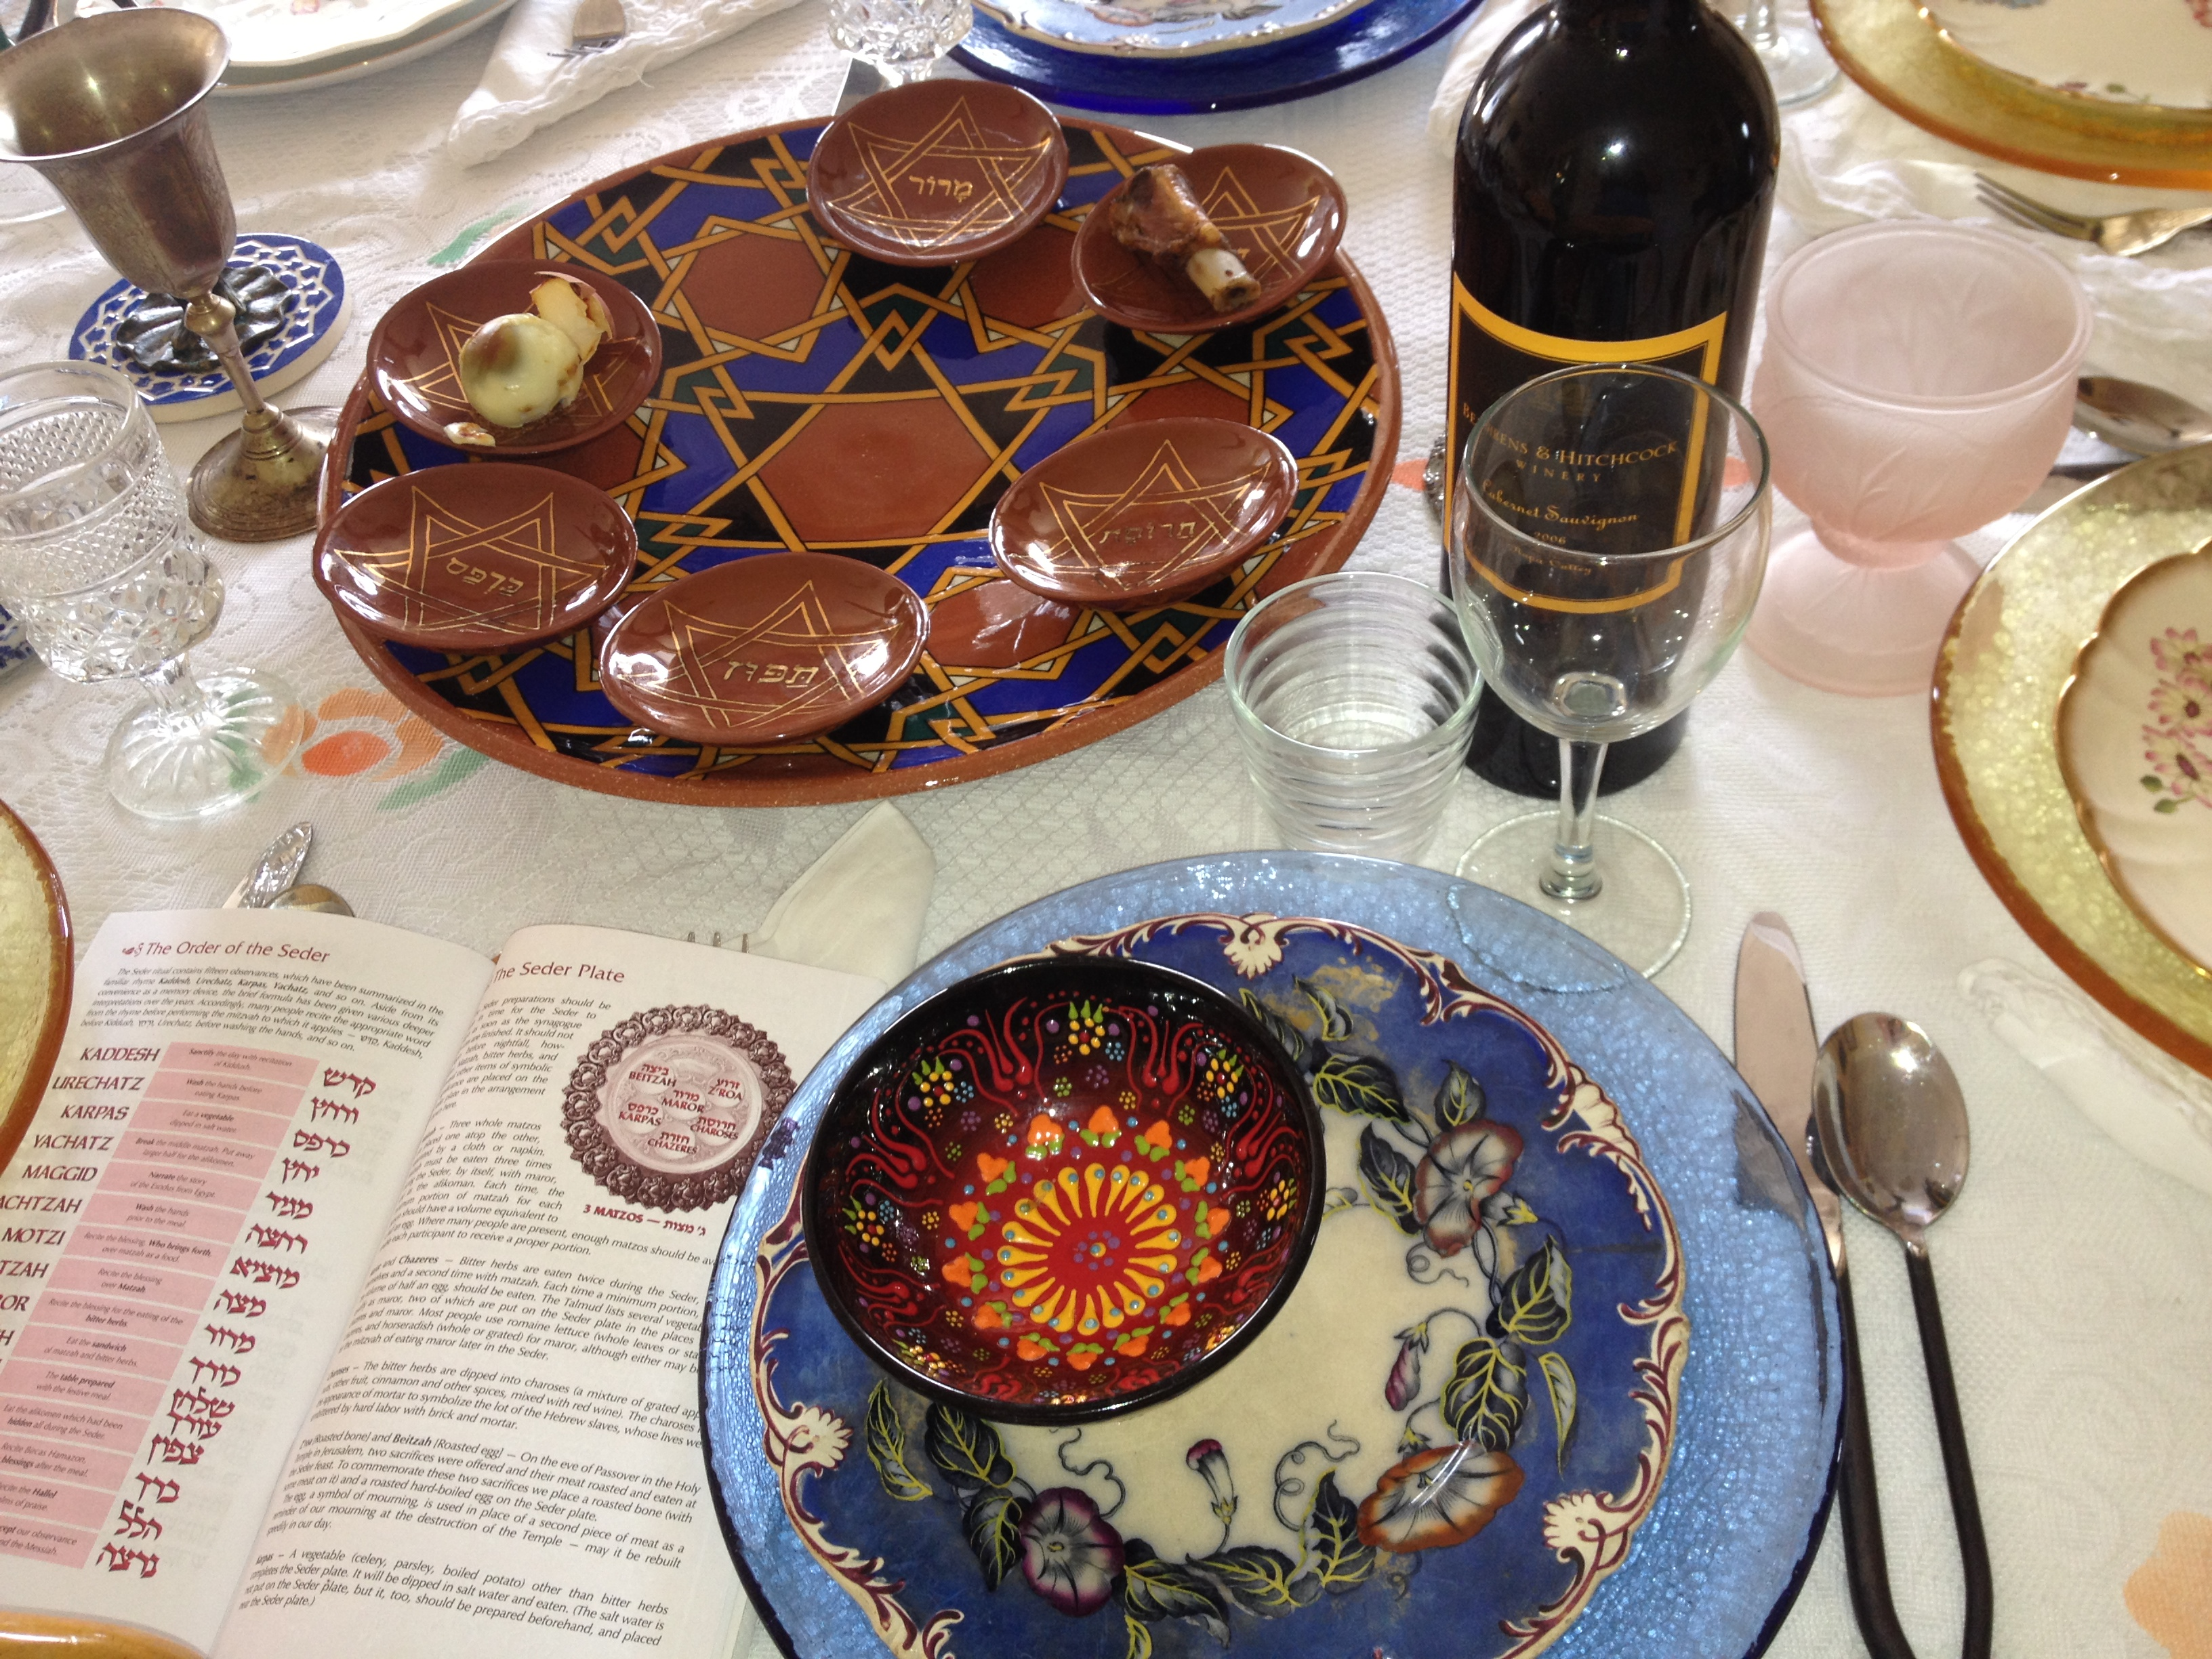 Preparing for Passover and setting a place at the table for the ...